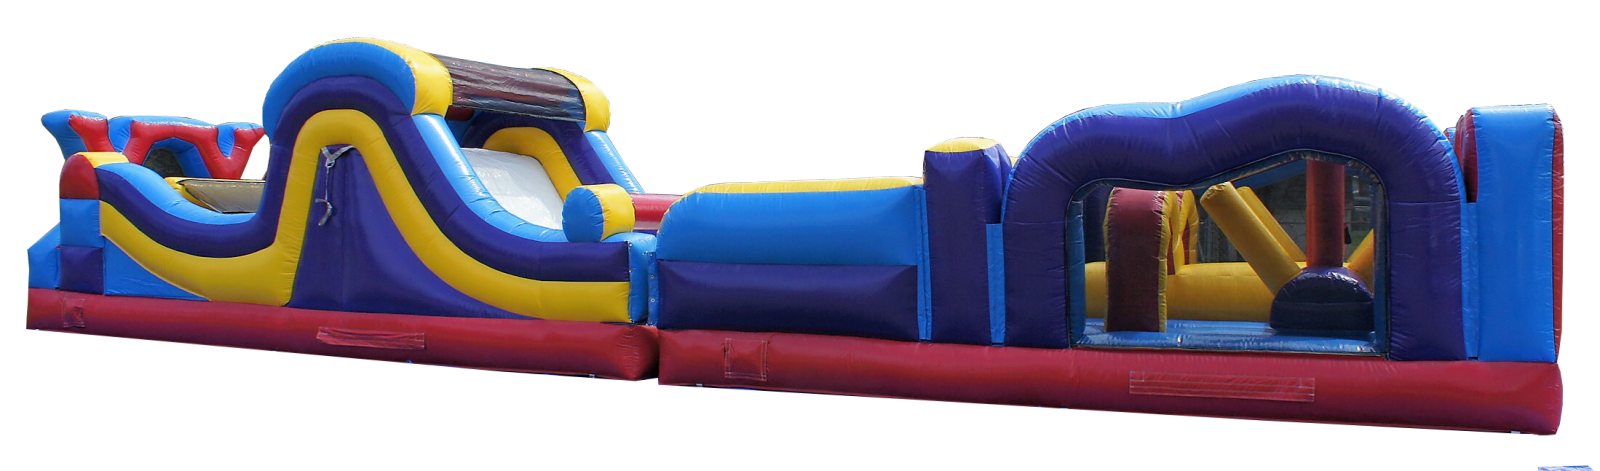 Obstacle course rentals La Vergne TN jumping hearts party rentals